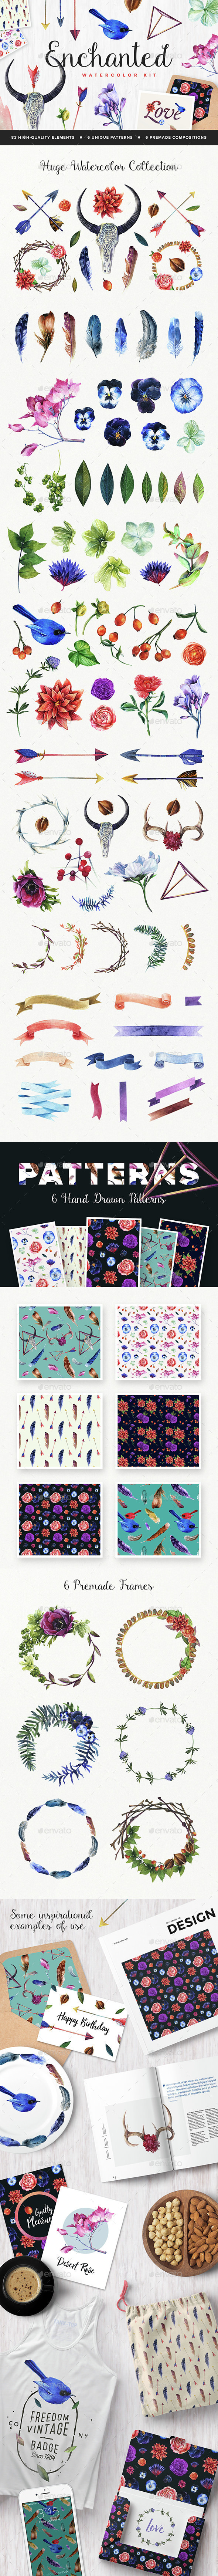 Enchanted Watercolor Kit - Decorative Graphics